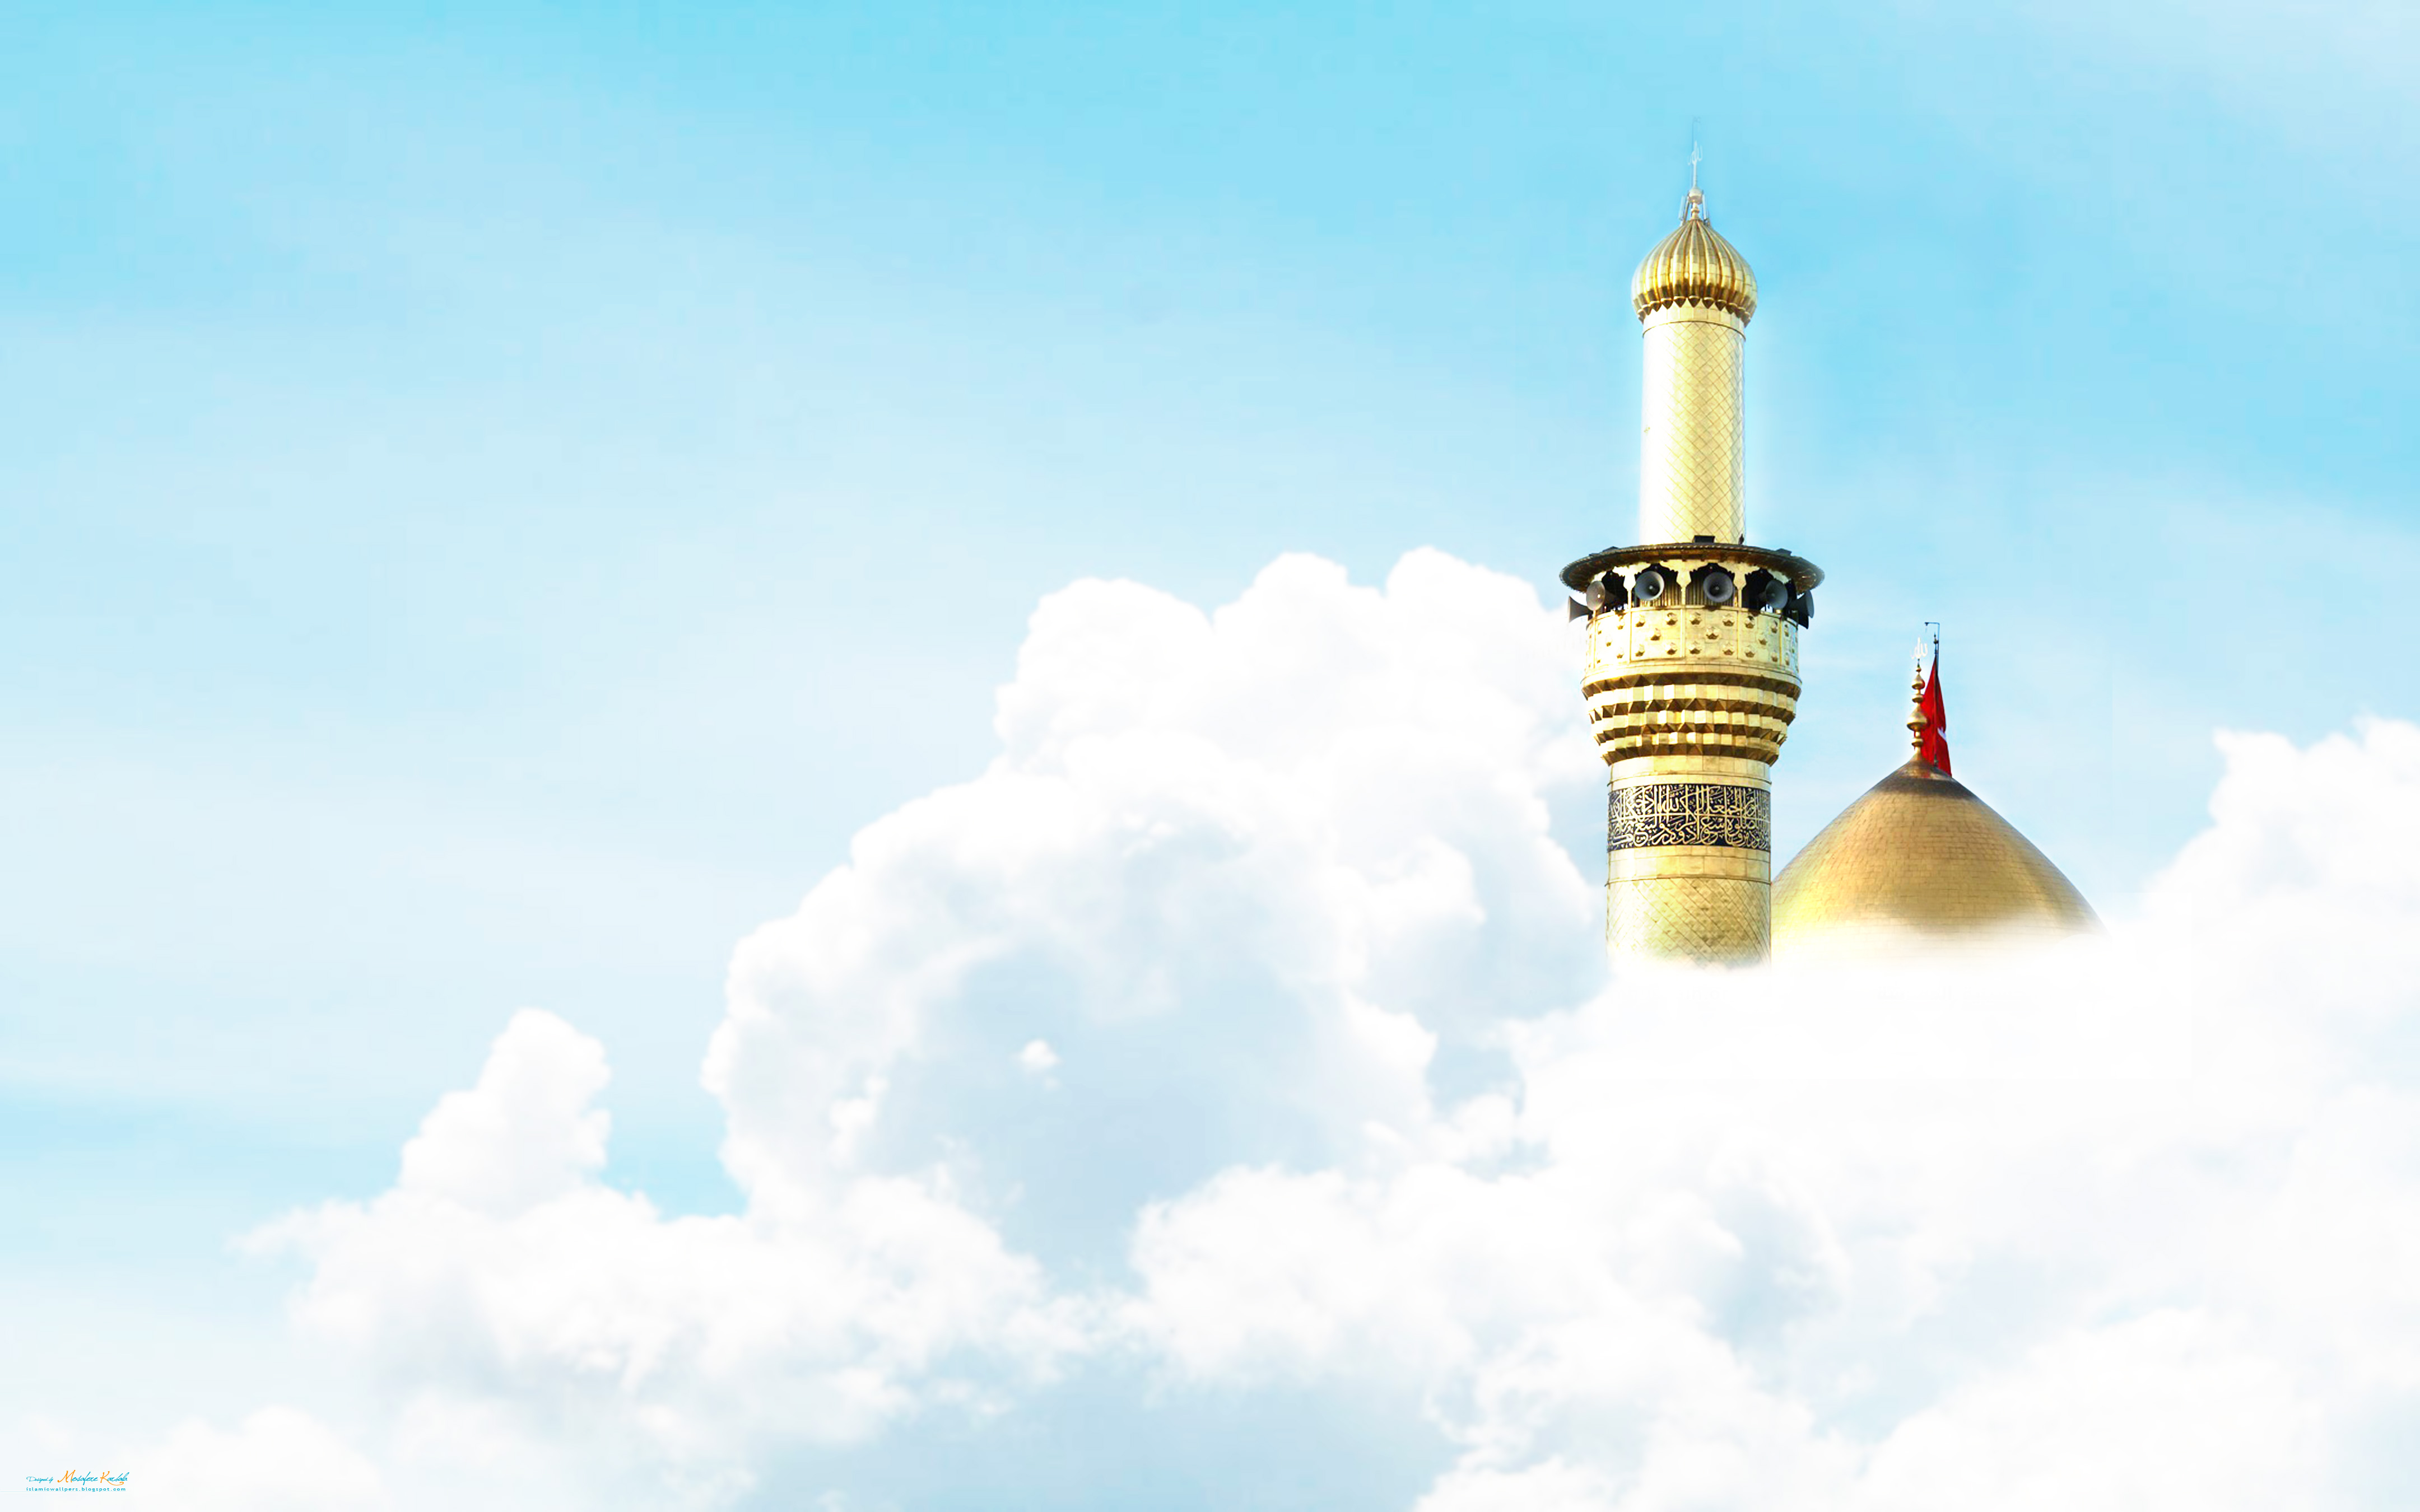 Madina karbala wallpapers - Imam wallpaper ...